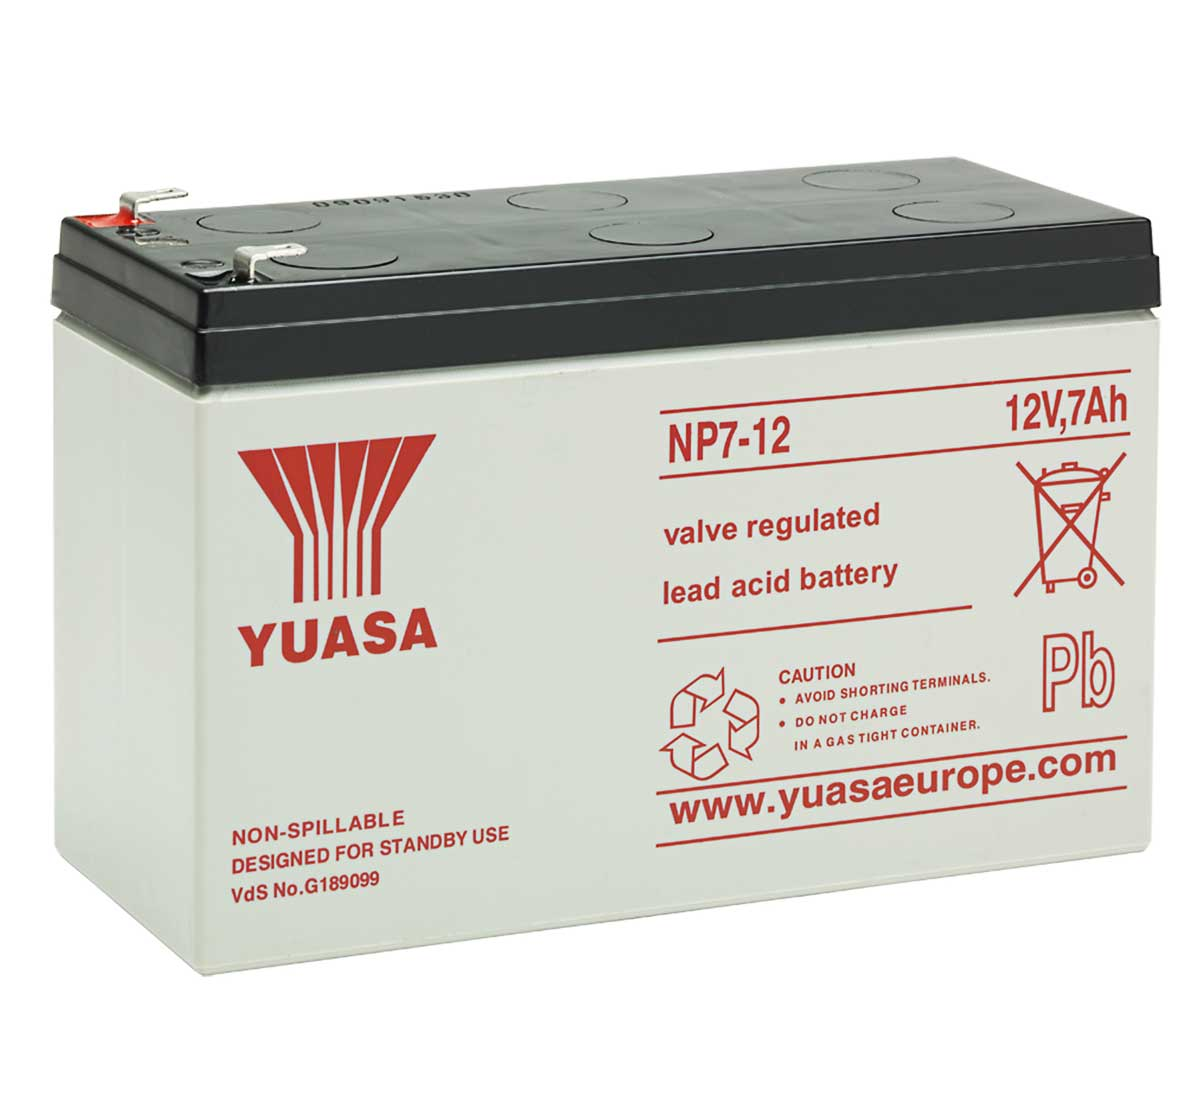 np7 12 12v 7ah yuasa lead acid battery mds battery. Black Bedroom Furniture Sets. Home Design Ideas